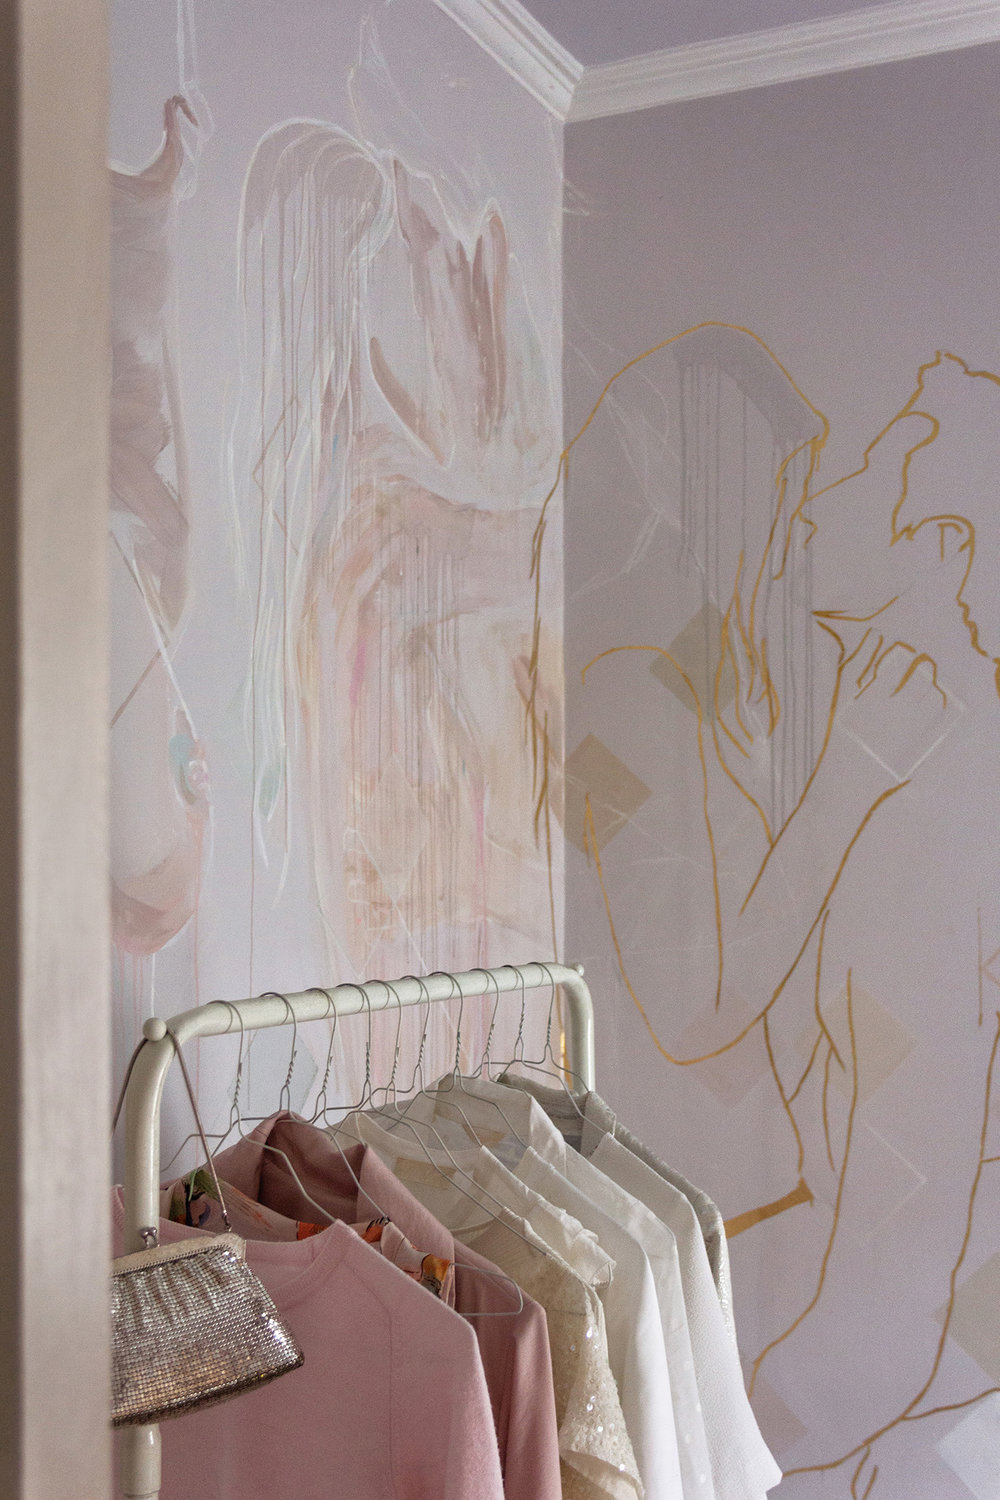 Mural featuring gold leaf outline of couple in love - male figure holds his girlfriend in his arms and they stare into each others eyes. Clothing rack with pastel ladies clothing is styled in front.